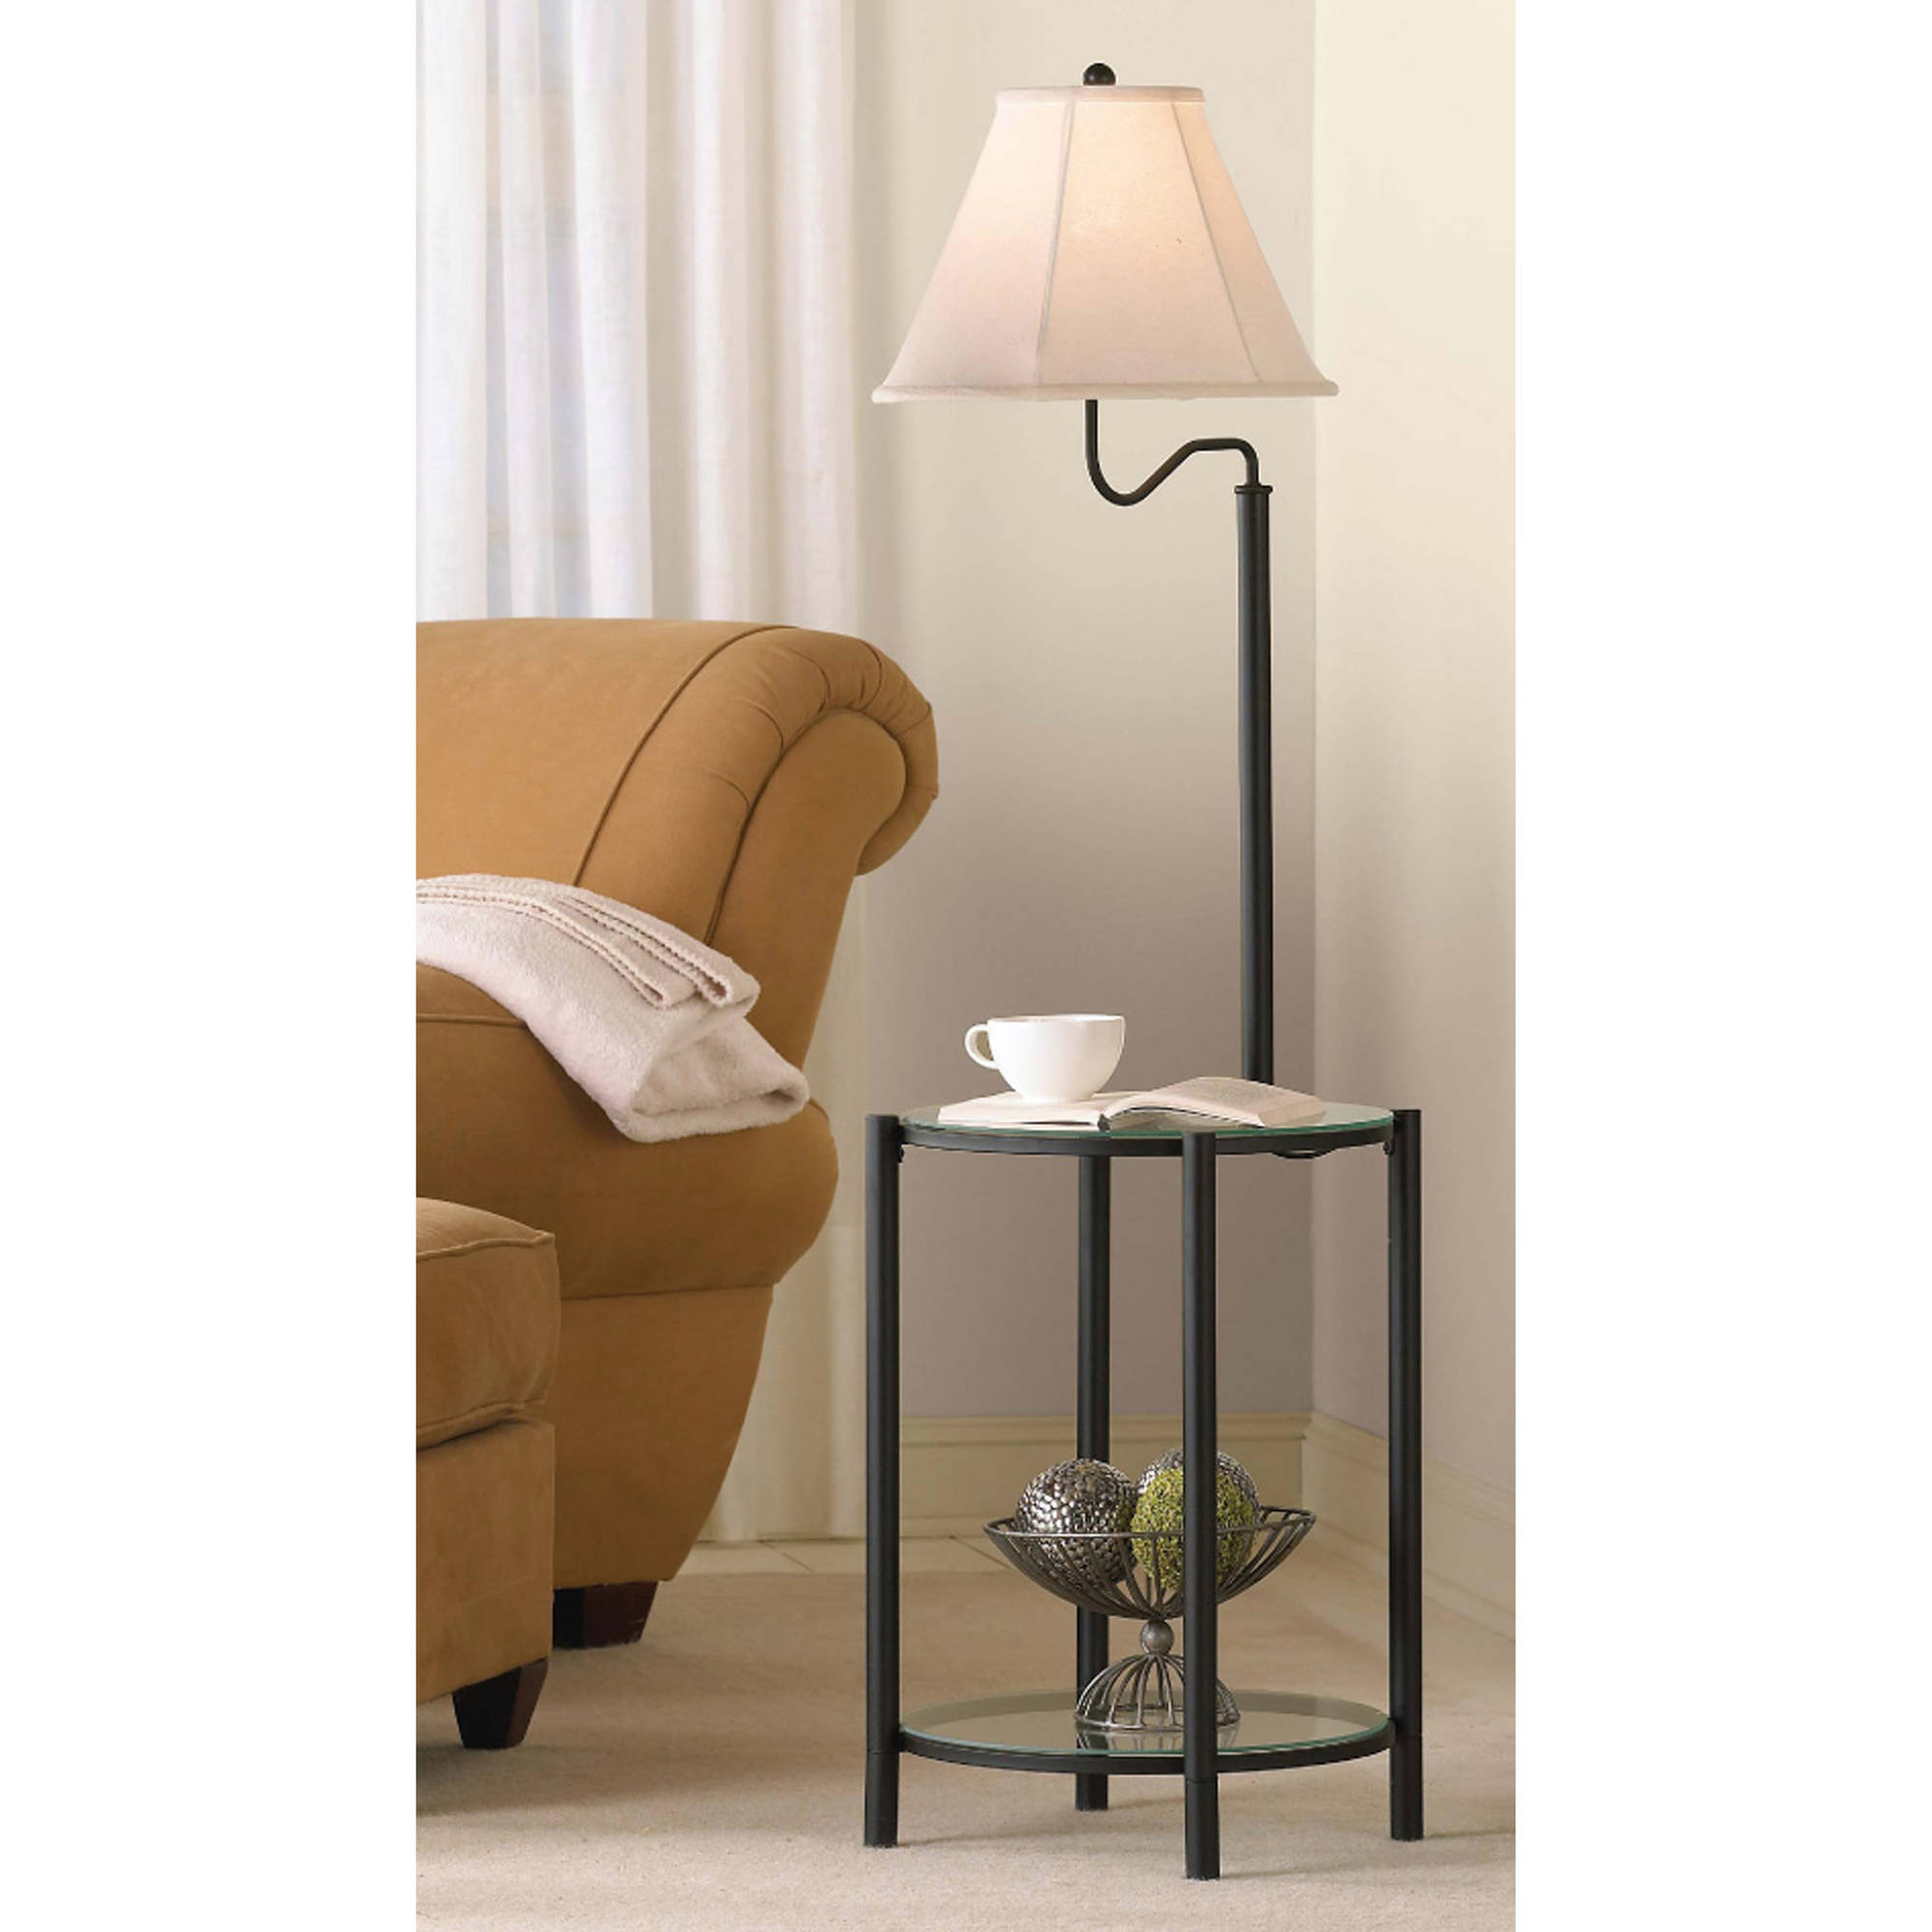 battery operated table lamps green lamp white tall for living room inside small accent square coffee with storage baskets tiffany rattle glass door designs rooms mobile phone